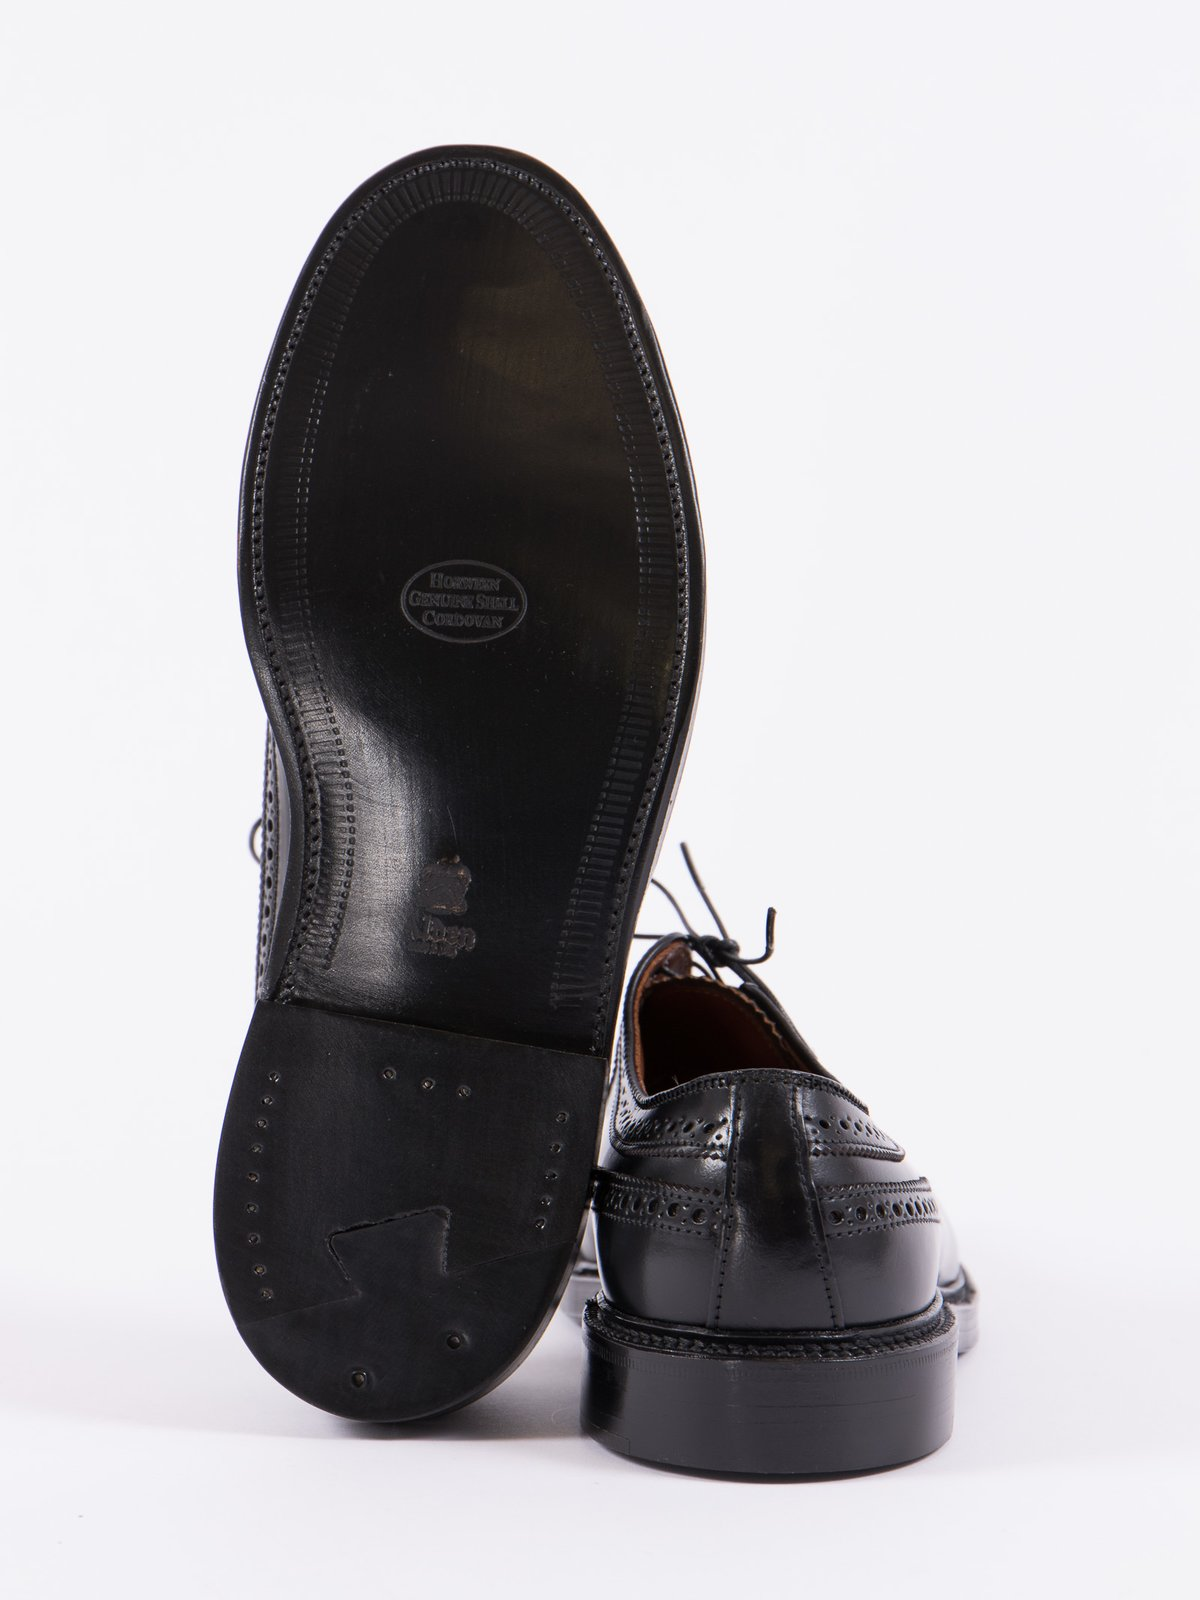 Black Cordovan Long Wing Blucher - Image 4